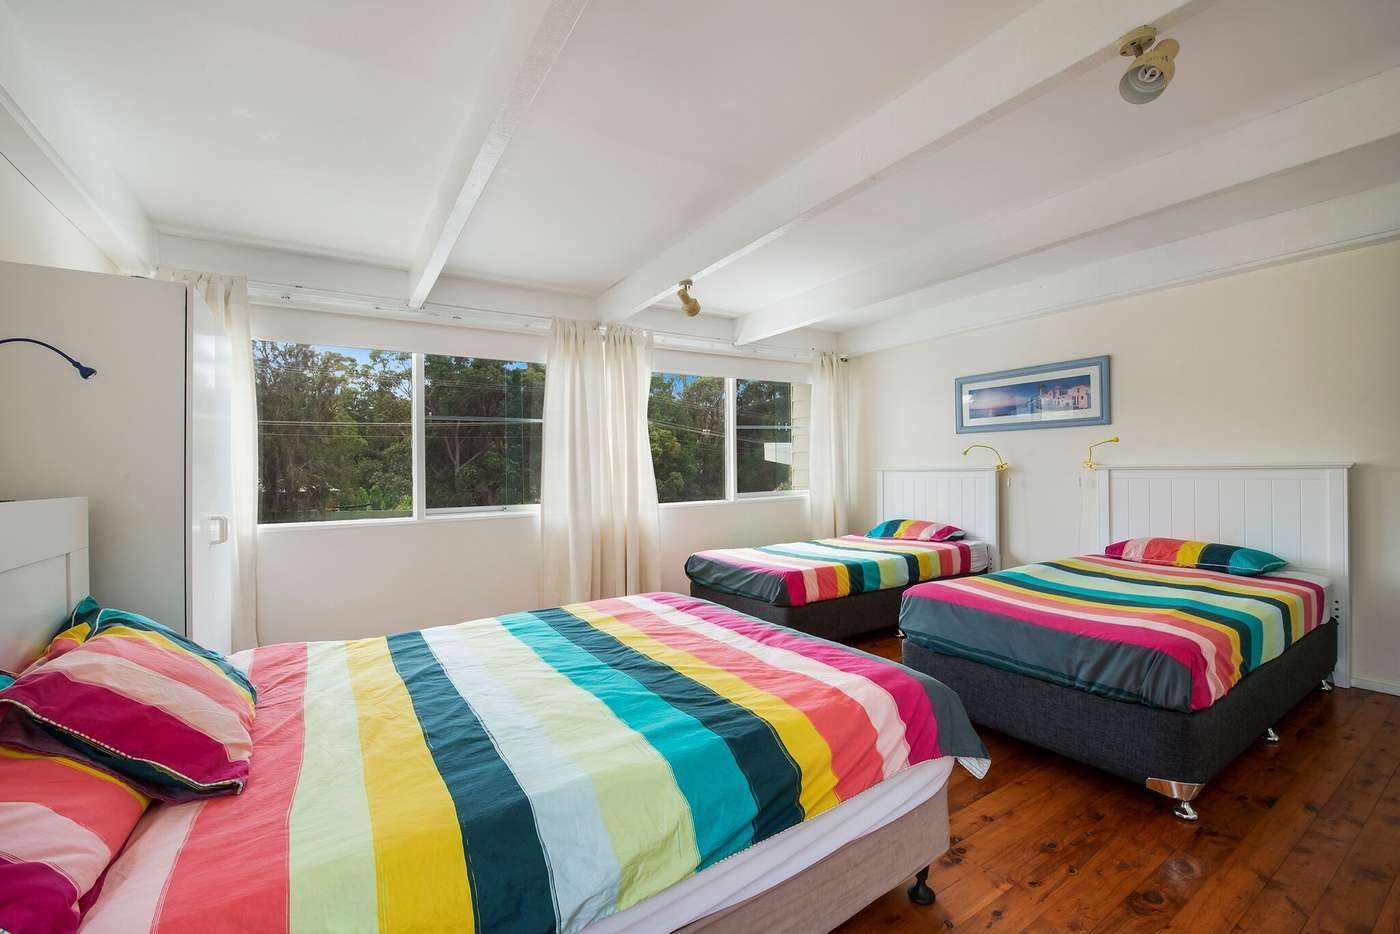 Sixth view of Homely house listing, 77 Tallwood Avenue, Mollymook NSW 2539